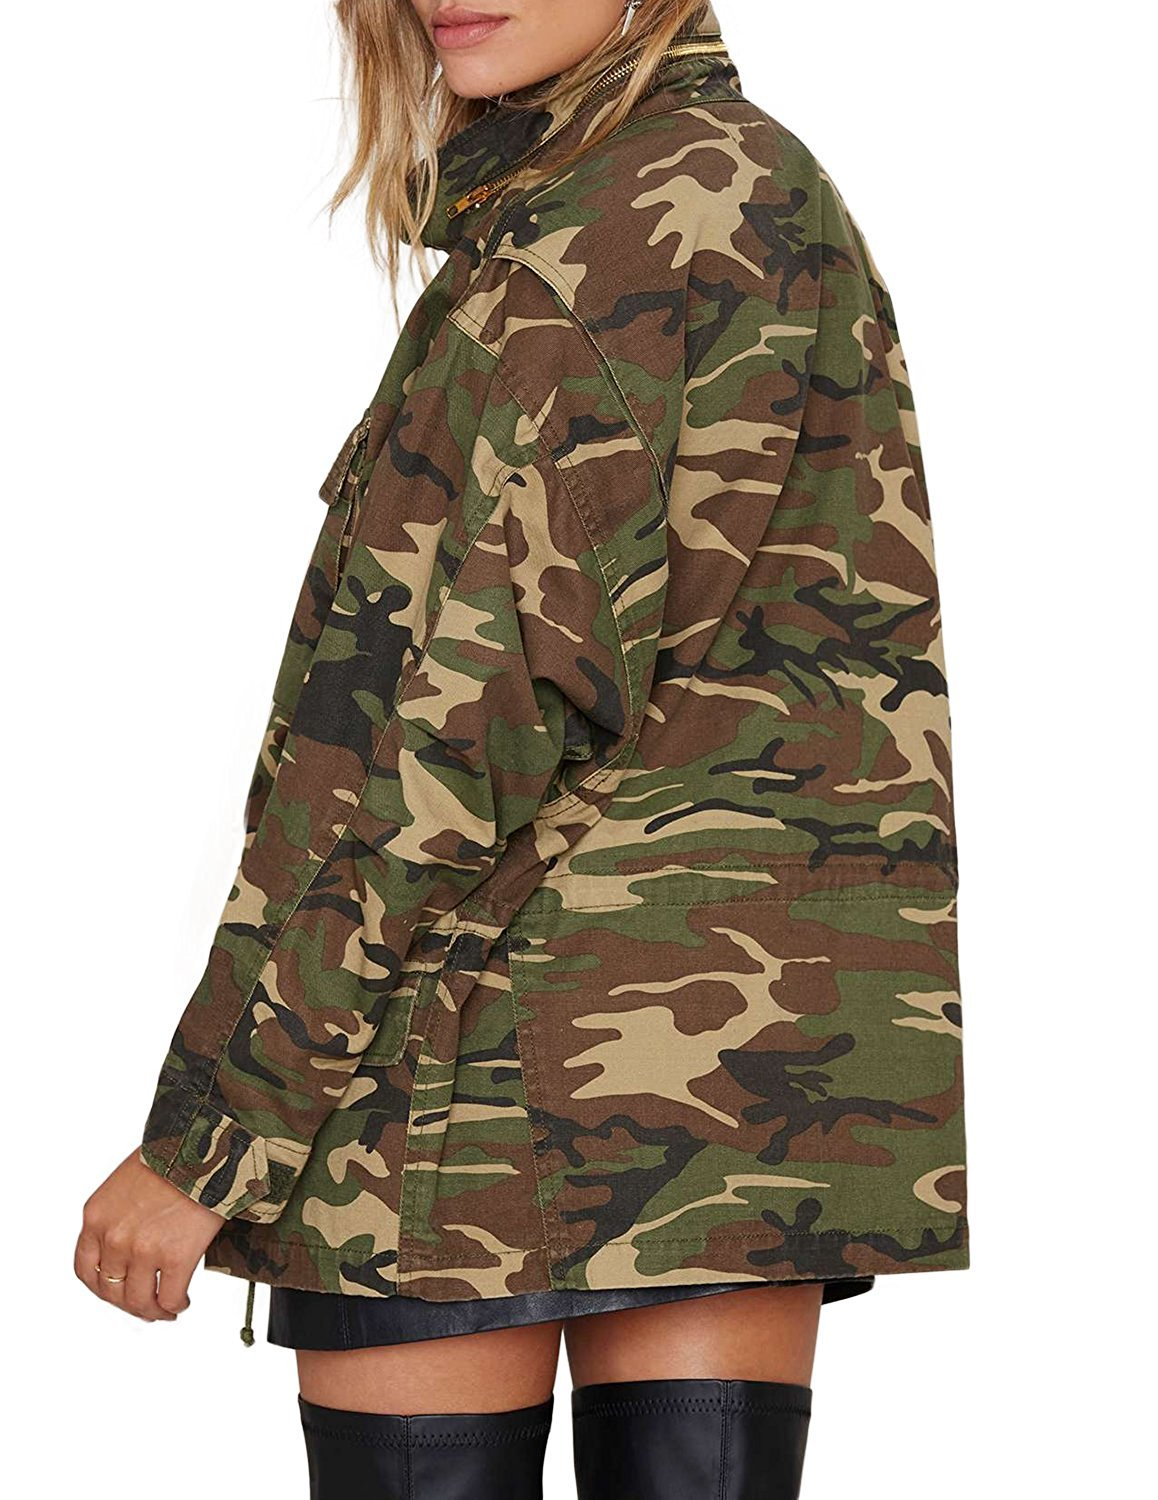 haoduoyi Womens Loose Camouflage Coats Disposition Outwear Jackets (XL) by HaoDuoYi (Image #3)